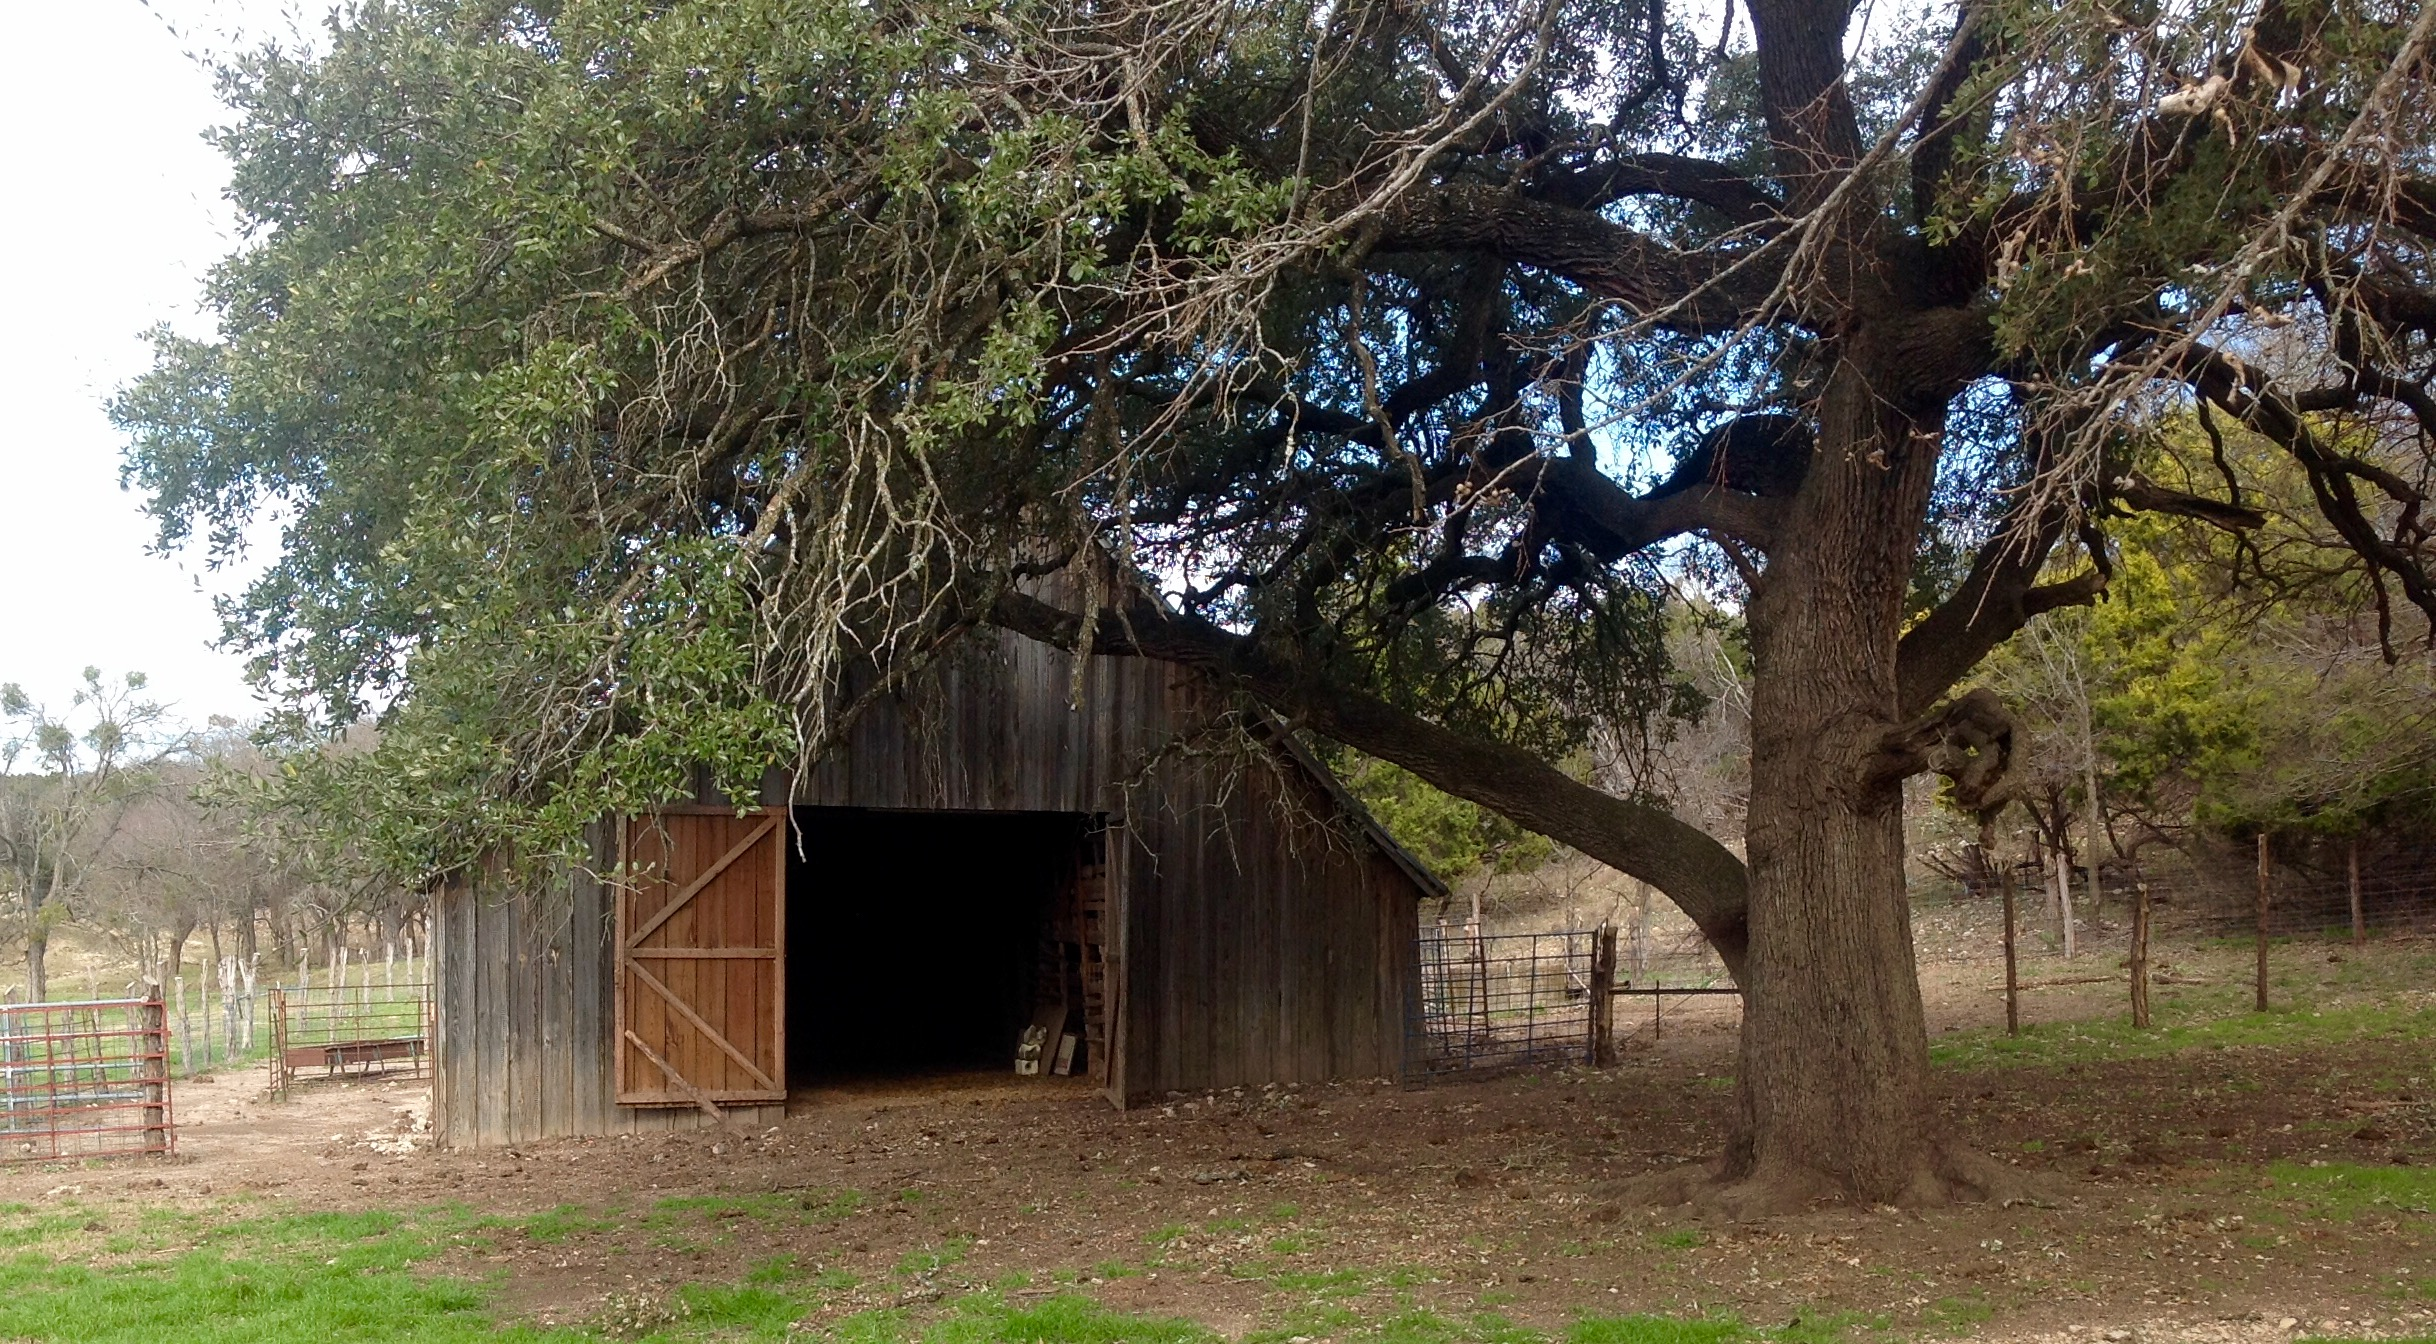 Barn Rustic Log Cabin Texas and Oklahoma Architect Architecture Firm